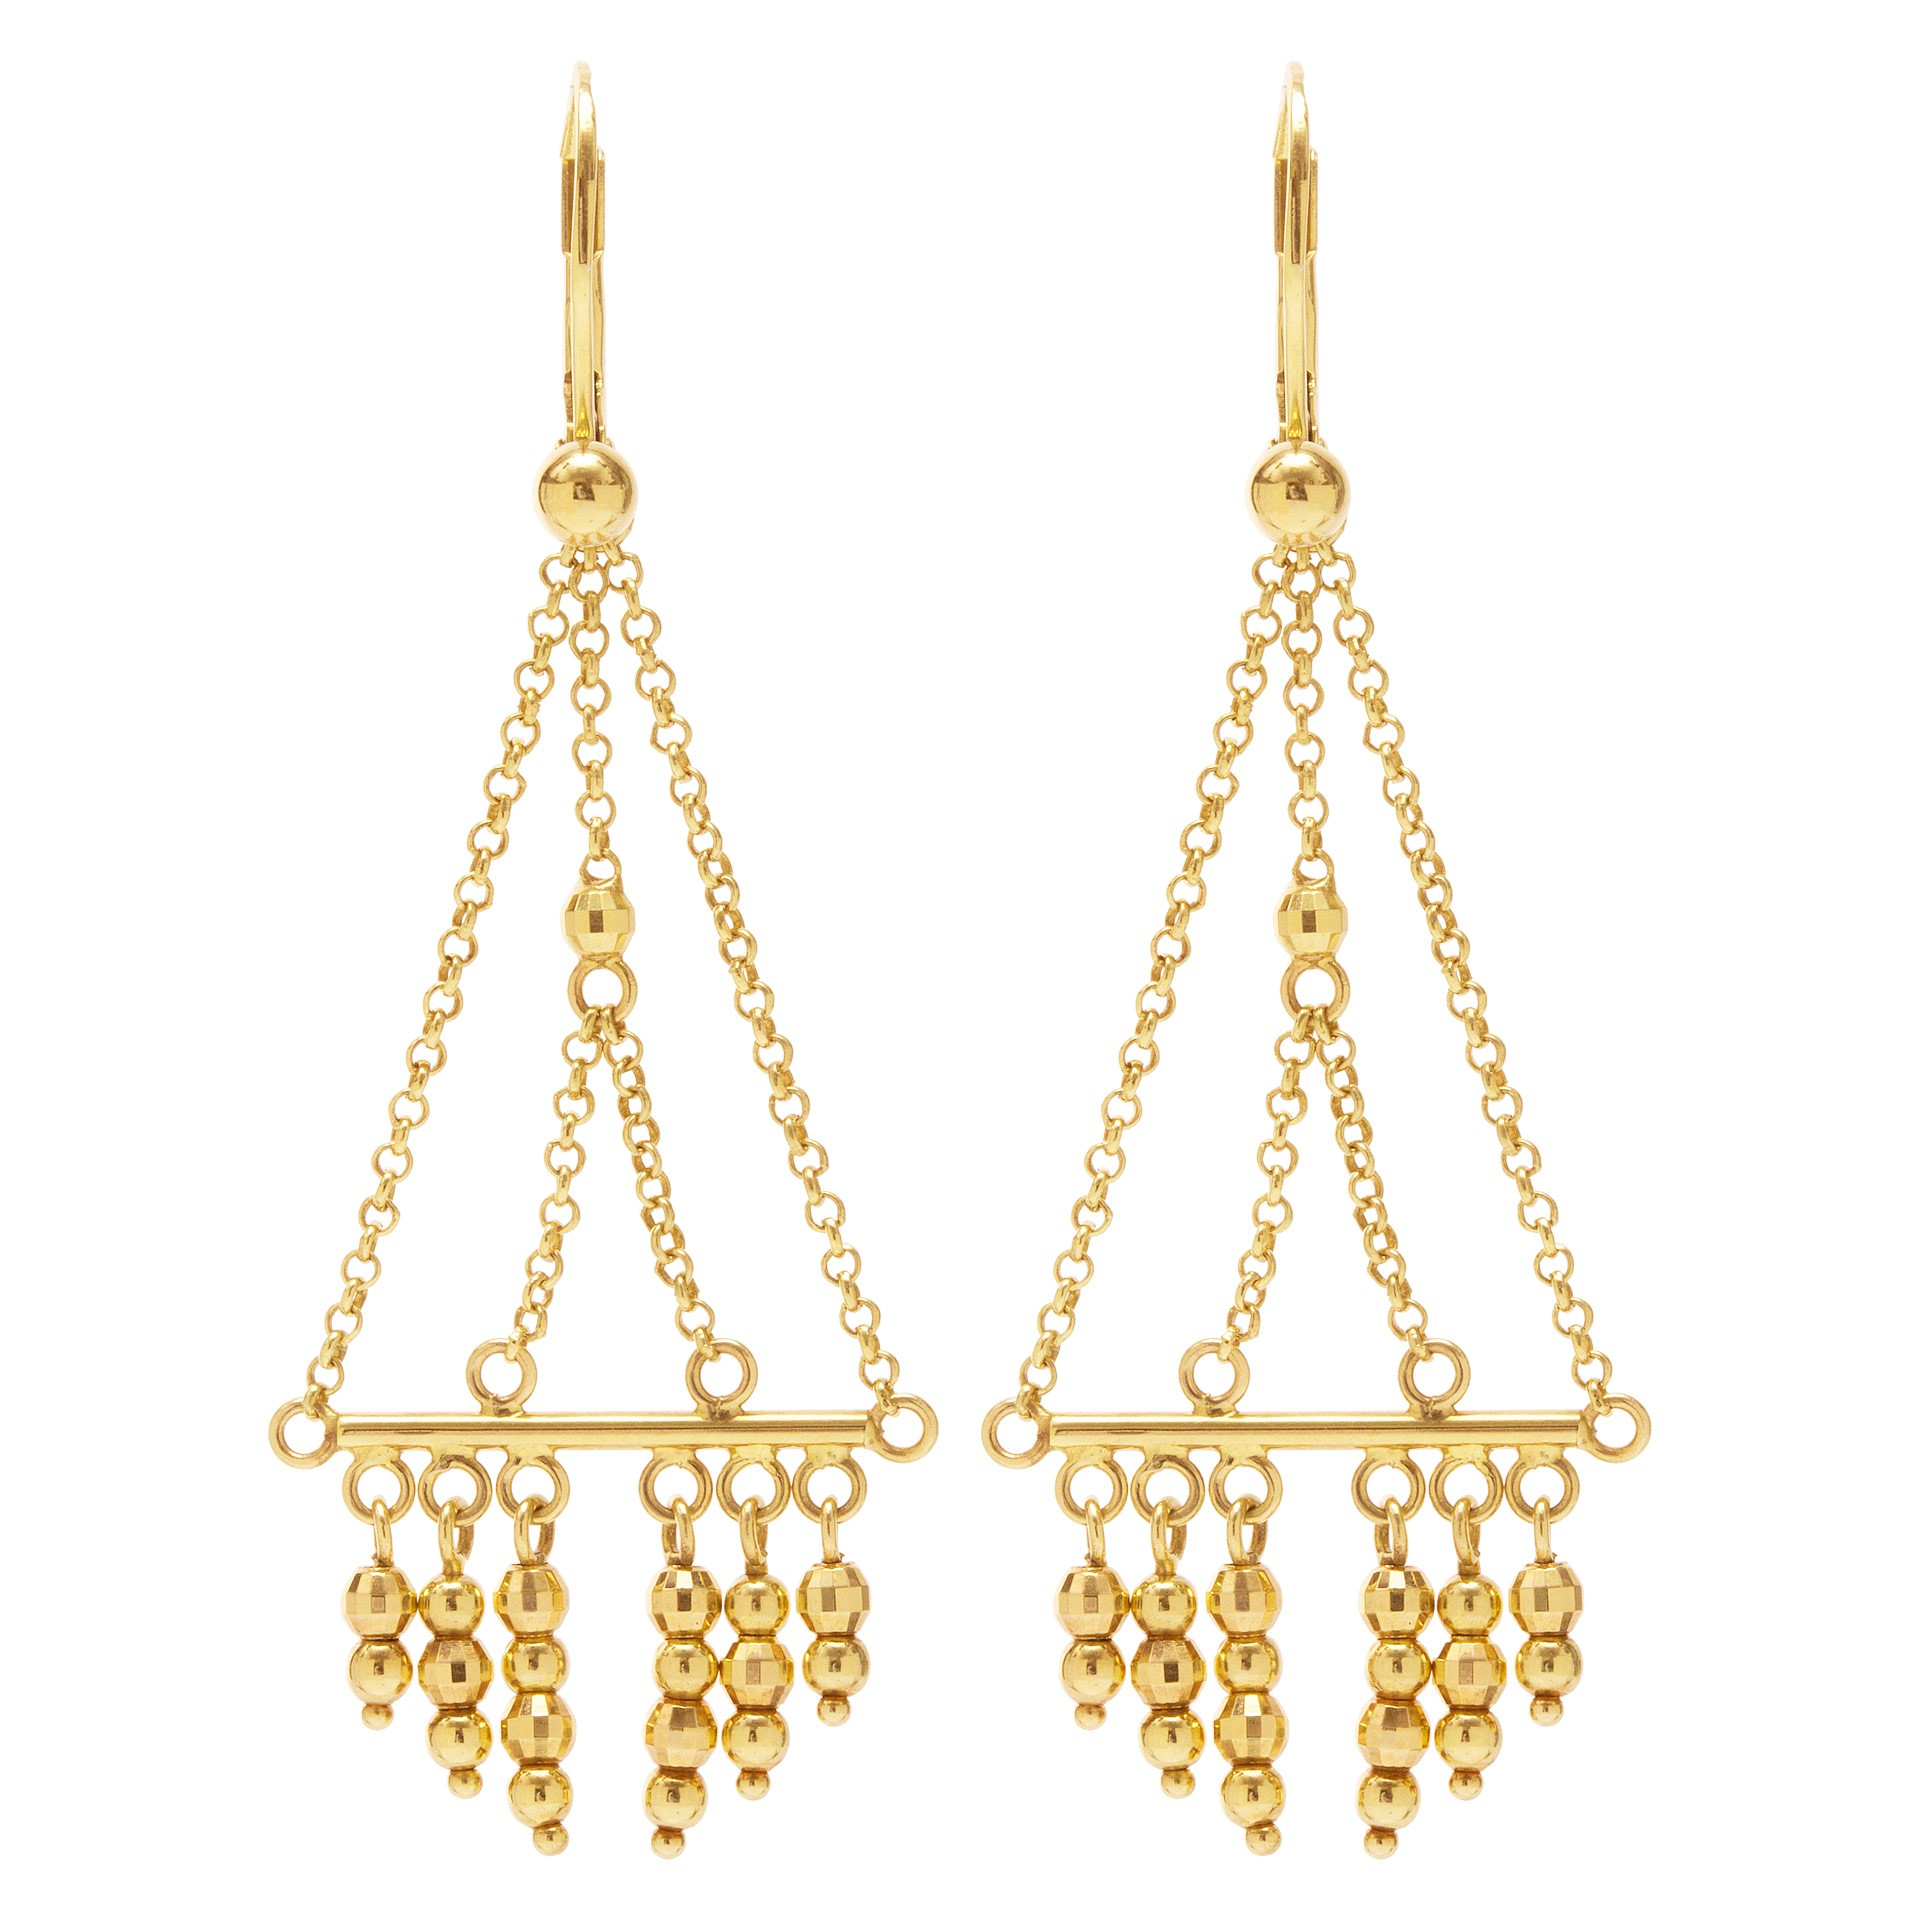 Fine Jewelry for Less than $1000: Gold dangling earrings